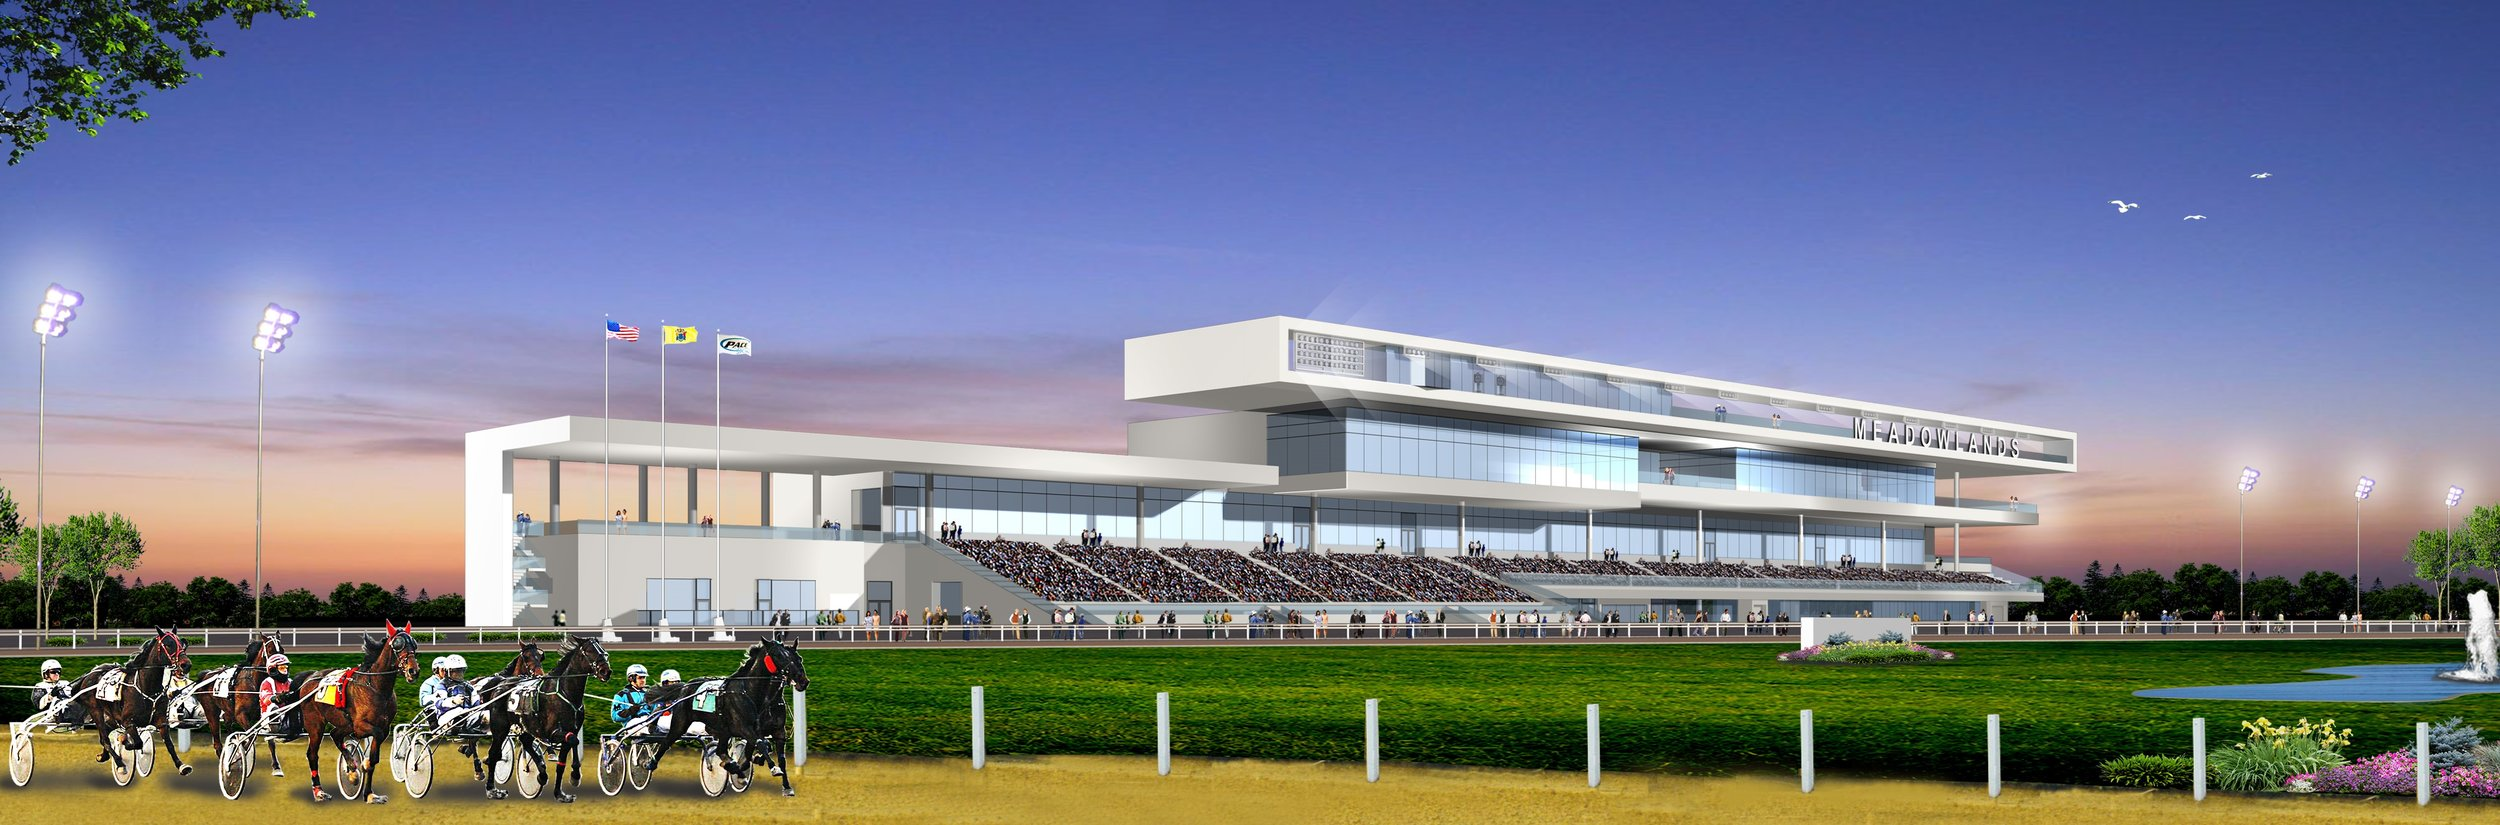 meadowlands racetrack-7 (2).jpg